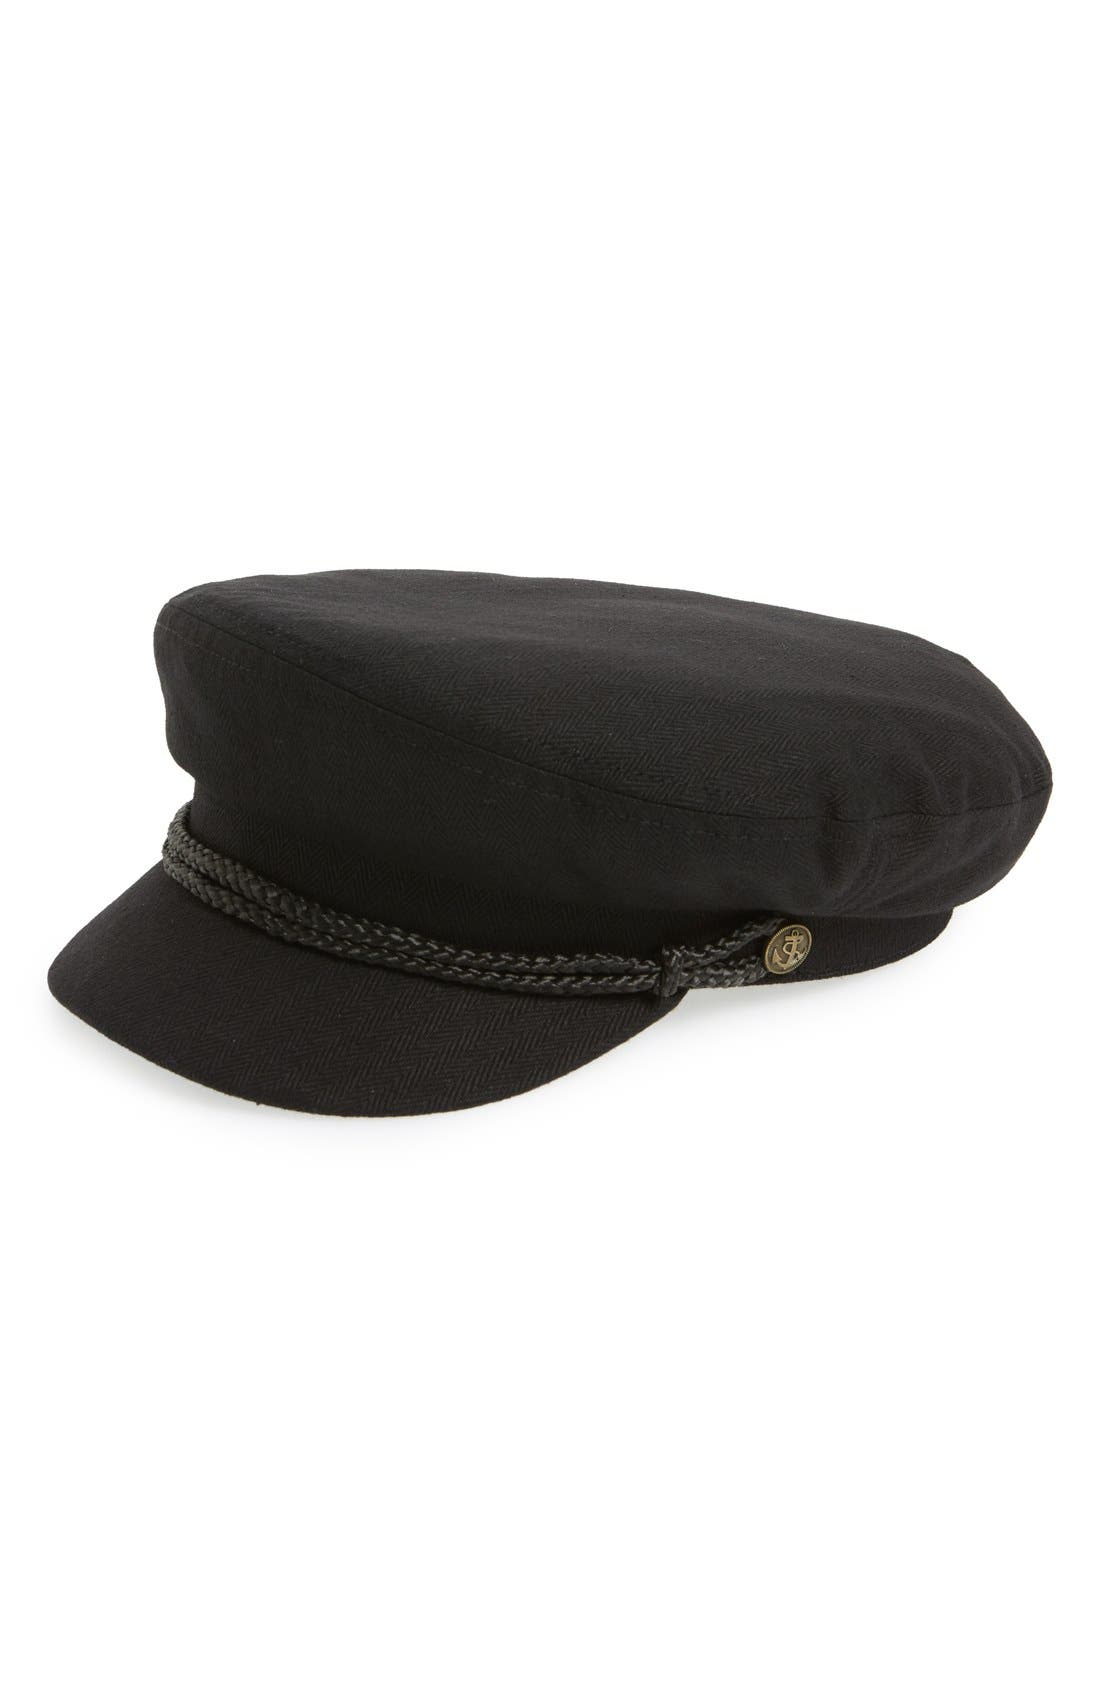 Fiddler Cap,                             Main thumbnail 1, color,                             BLACK